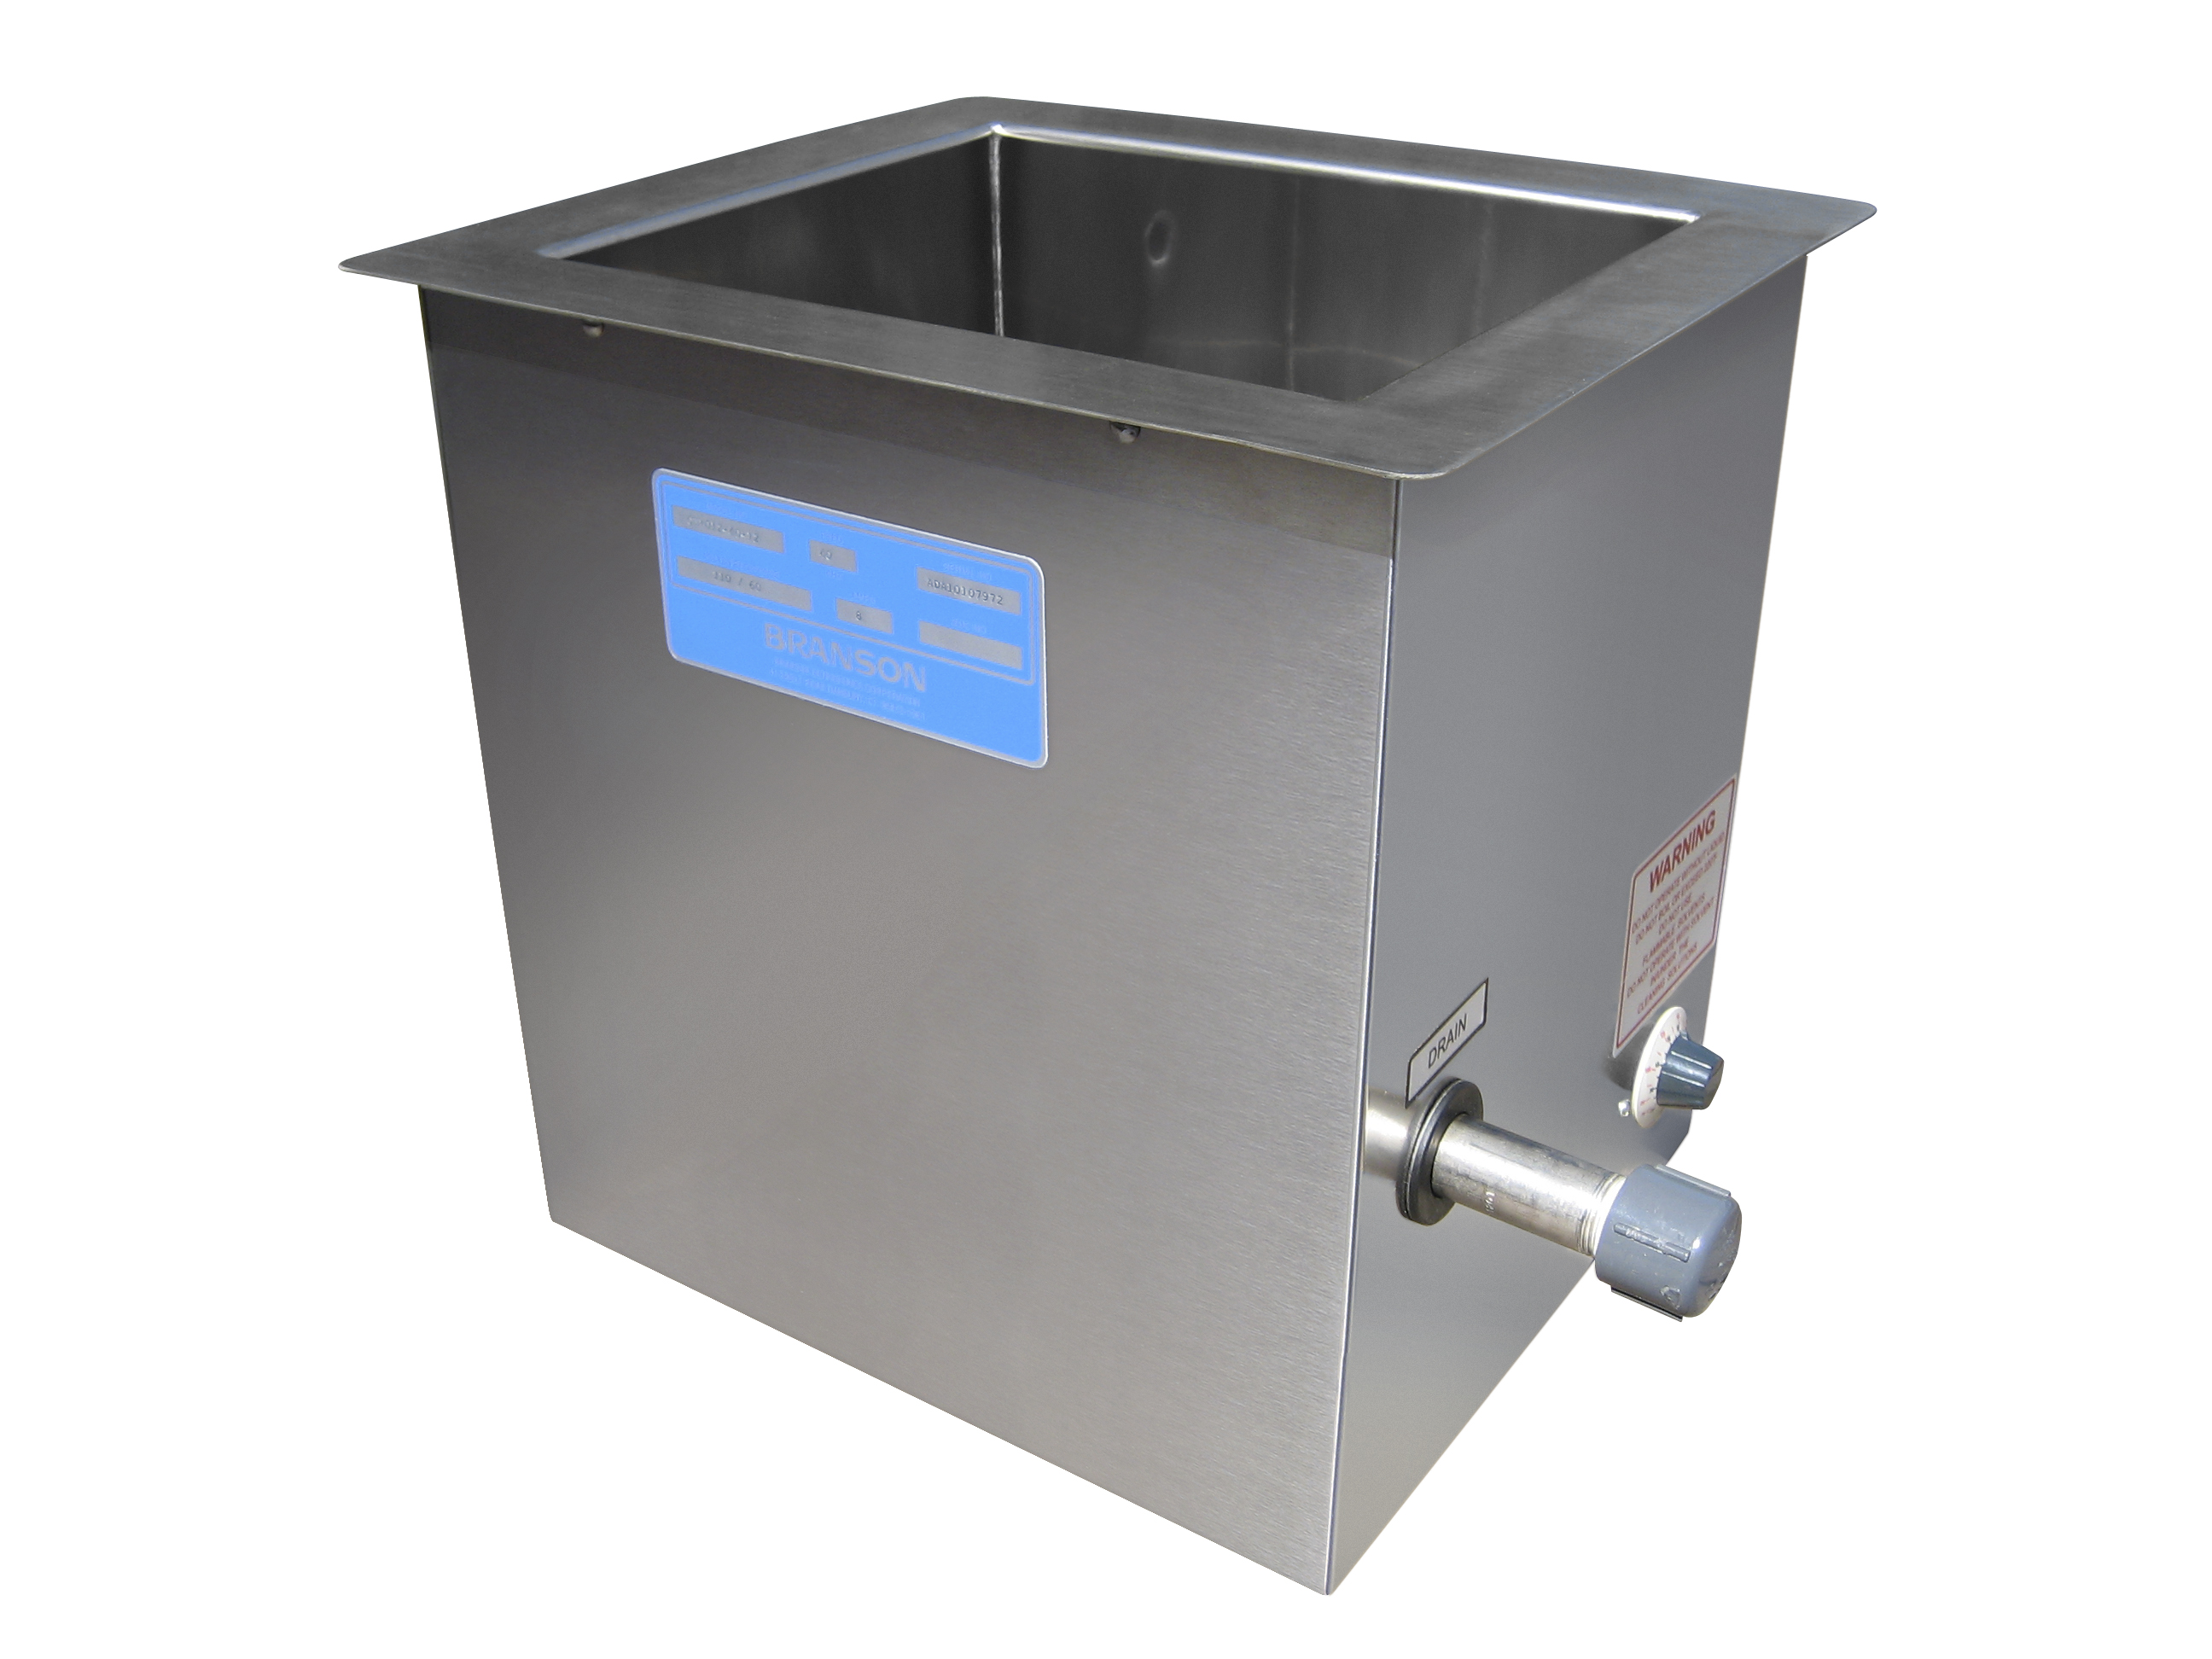 Ultrasonic Cleaning Branson Emerson No Products Generators Generator Circuit View Components